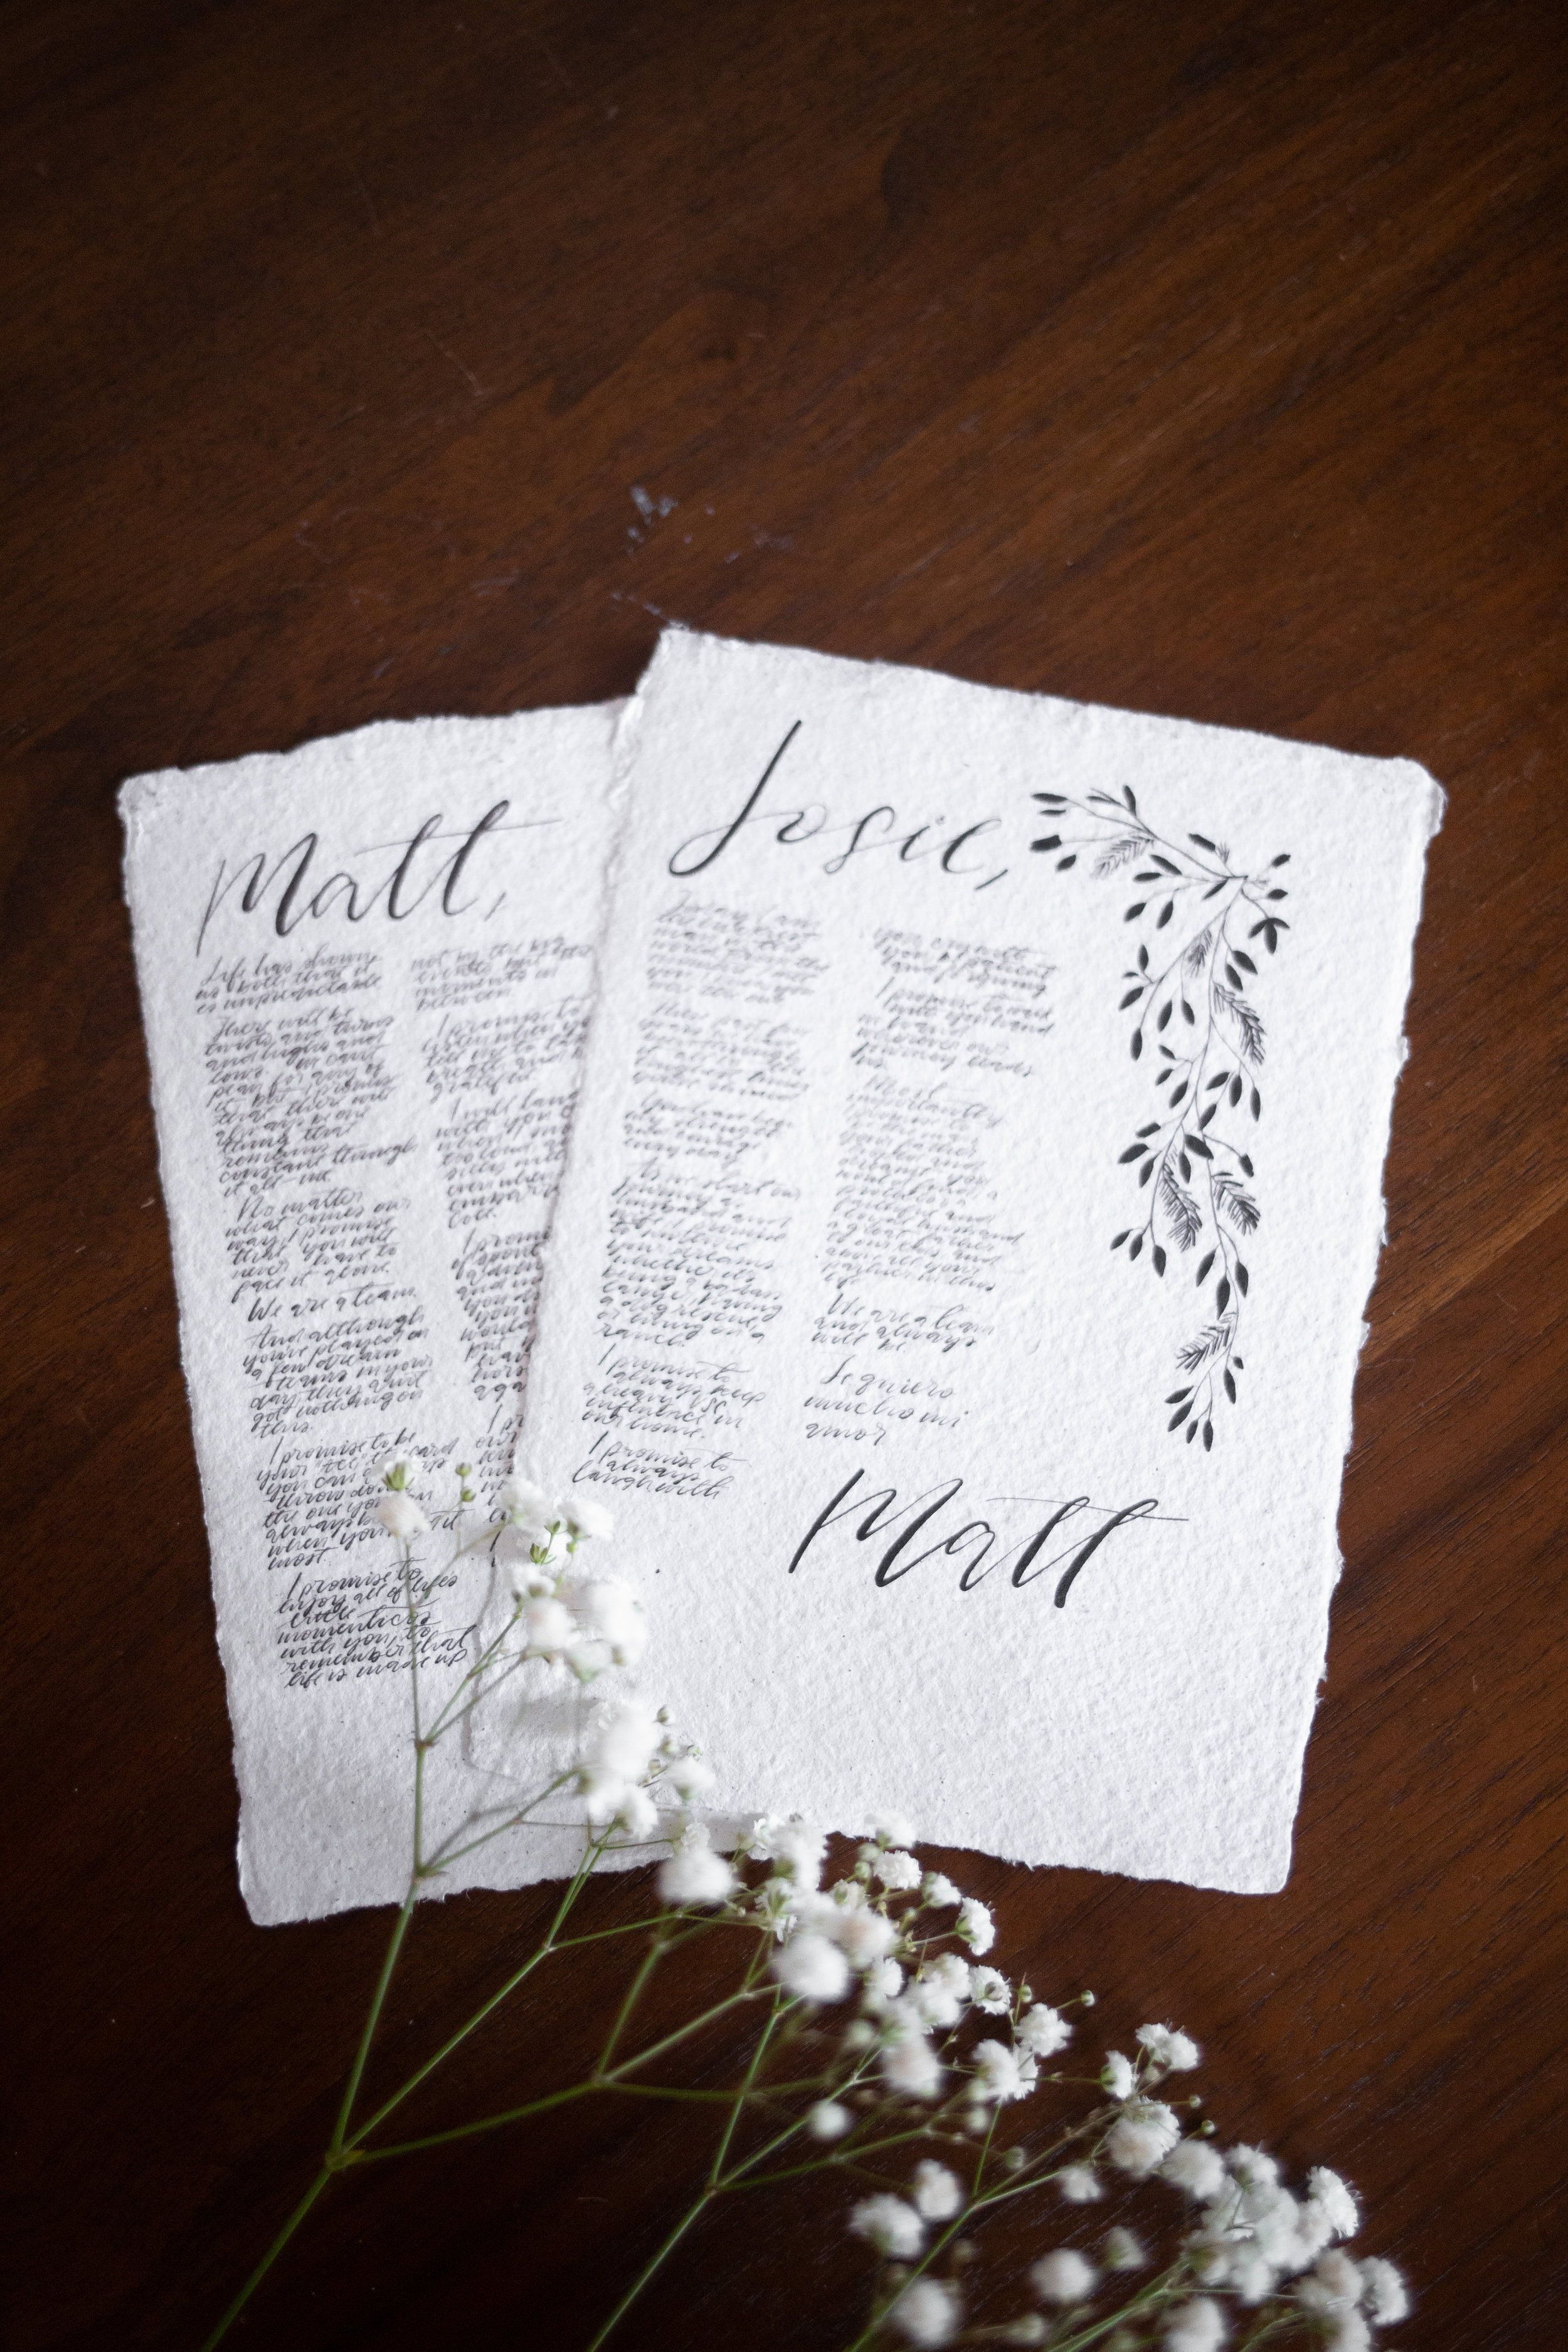 Handmade Love - 5x7 Hand-Written Vows on Handmade Deckled Edge Cotton Paper | Frame not included$195